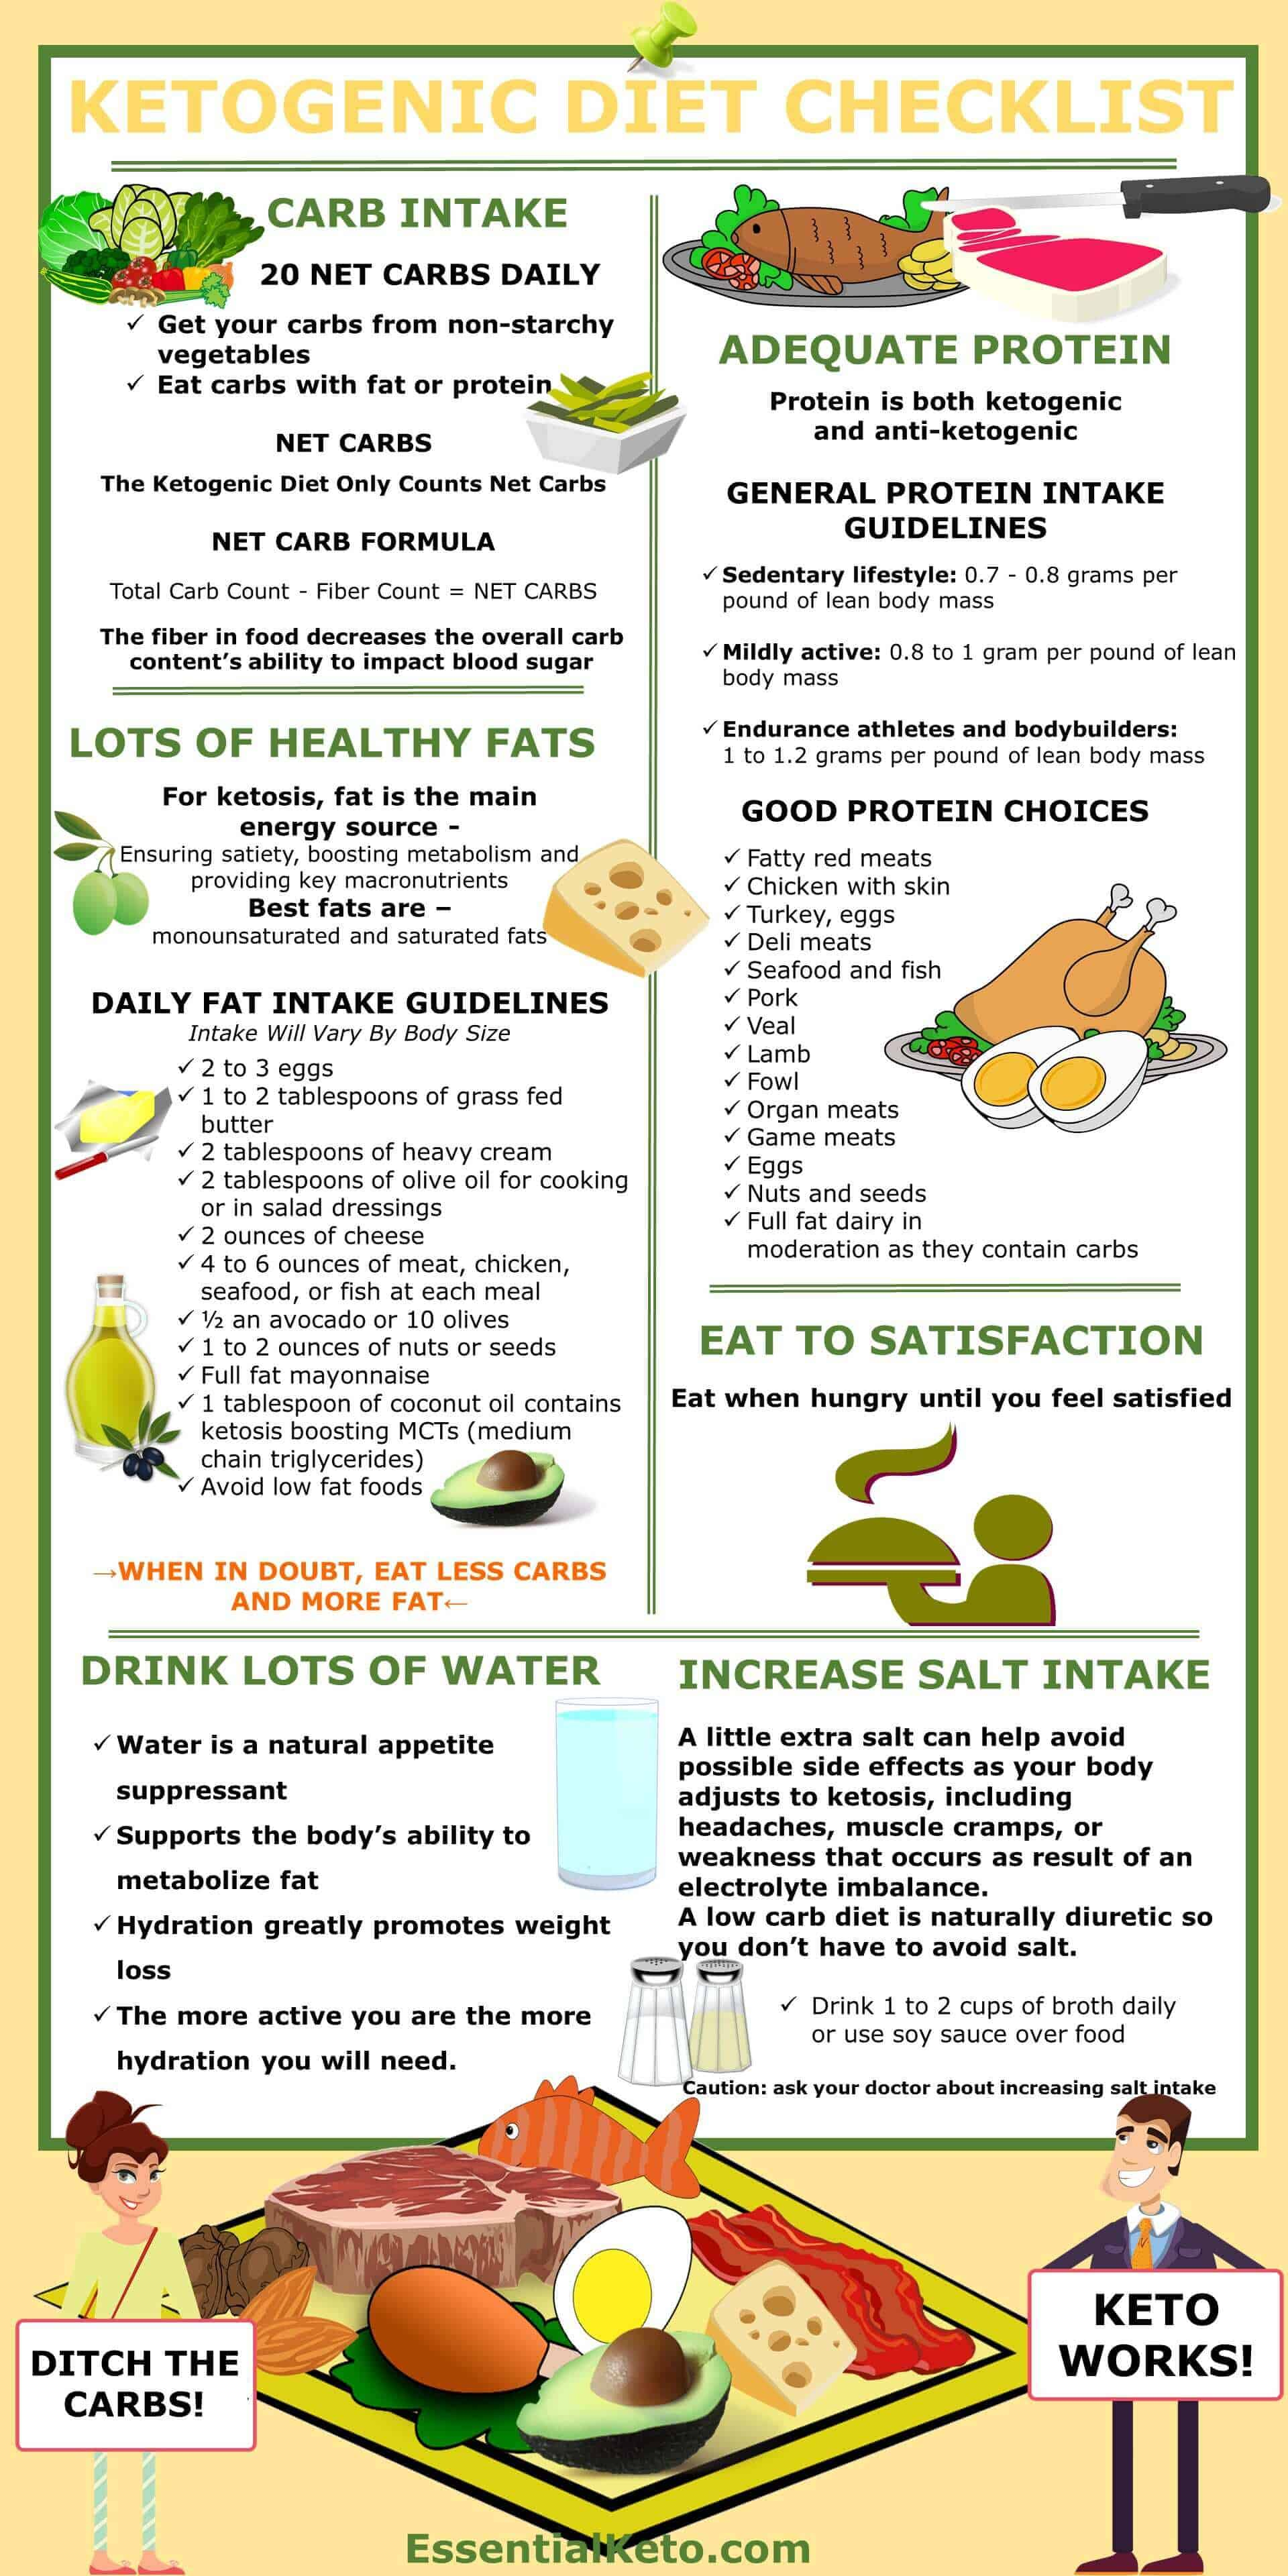 recommended carb intake for diet